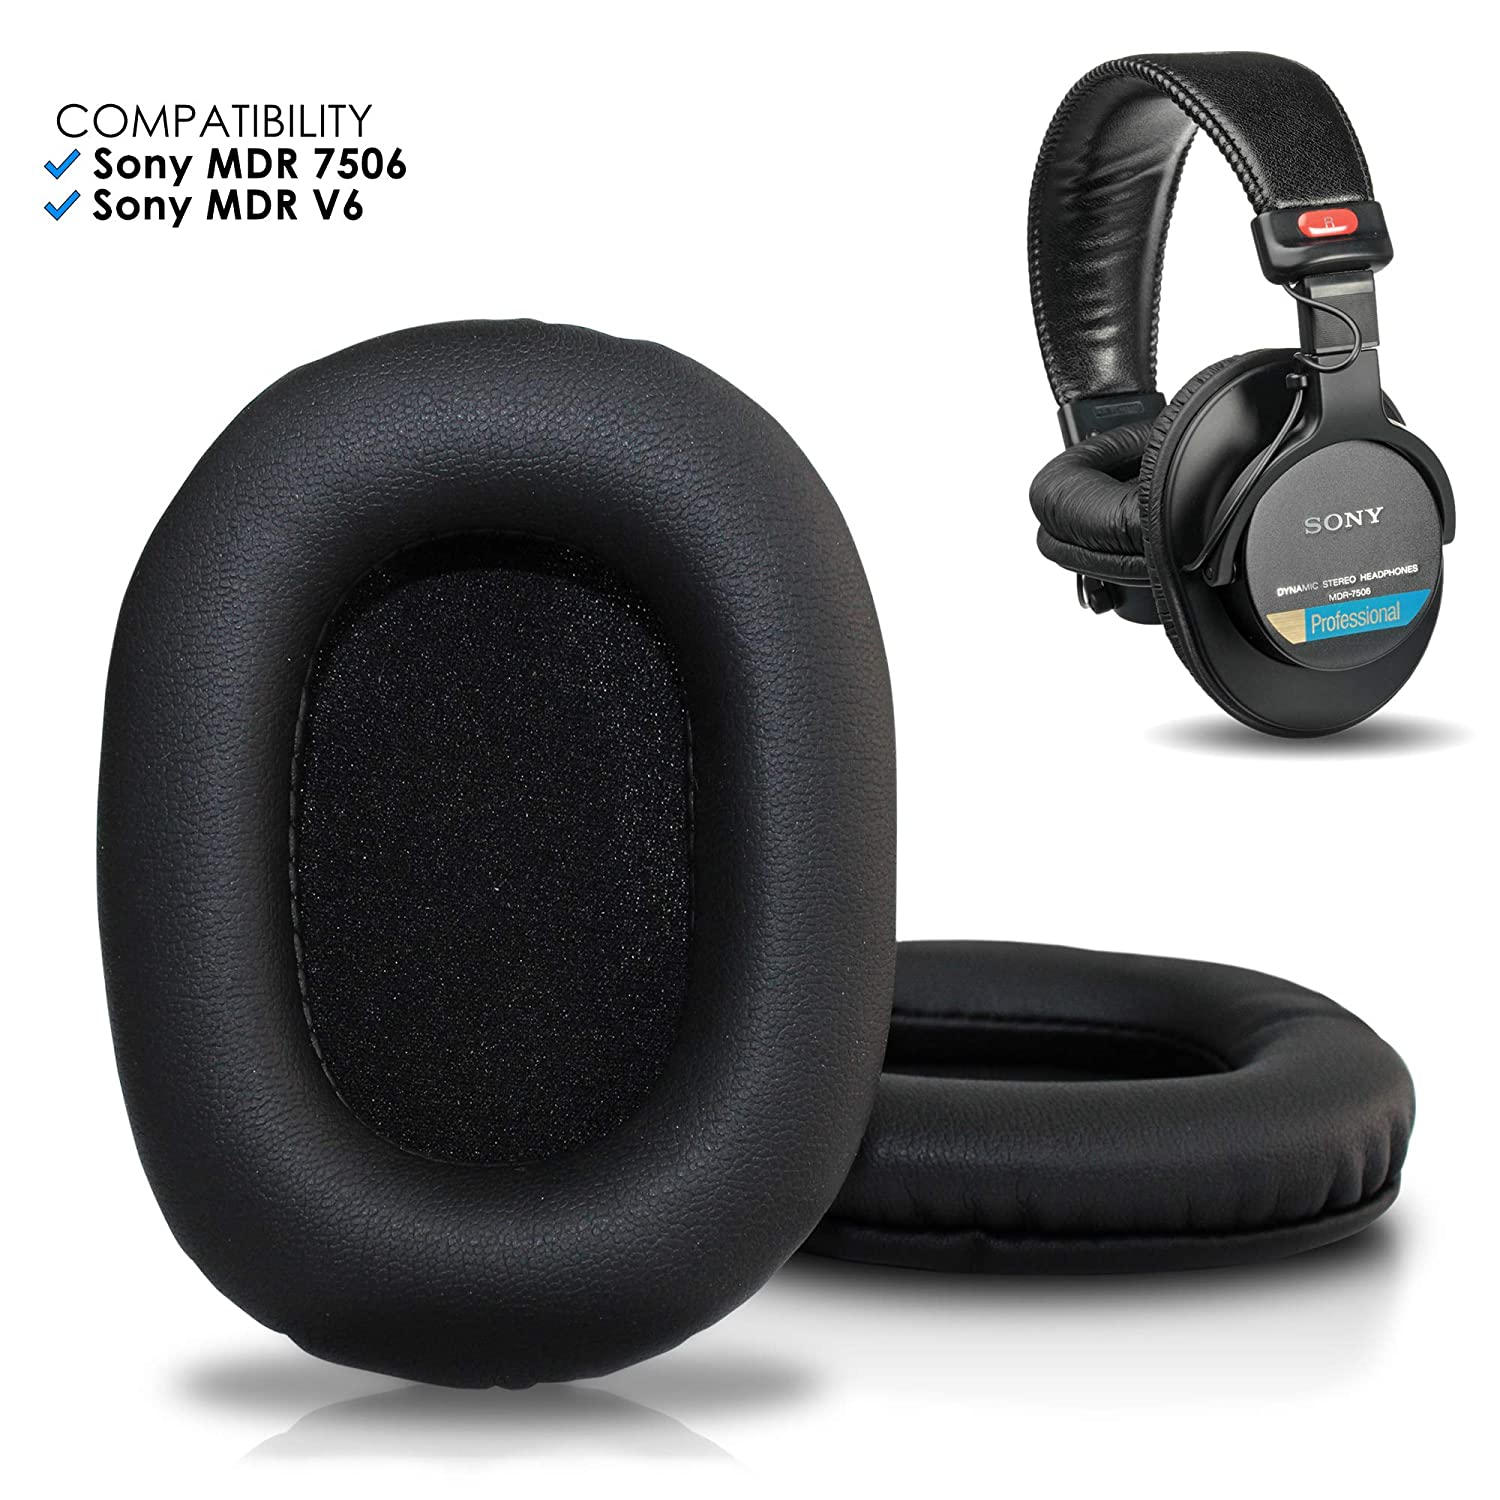 Upgraded Sony Mdr 7506 Replacement Ear Pads By Wicked Cushions Also Compatible With Mdr V6 Mdr V7 Mdr Cd900st Black